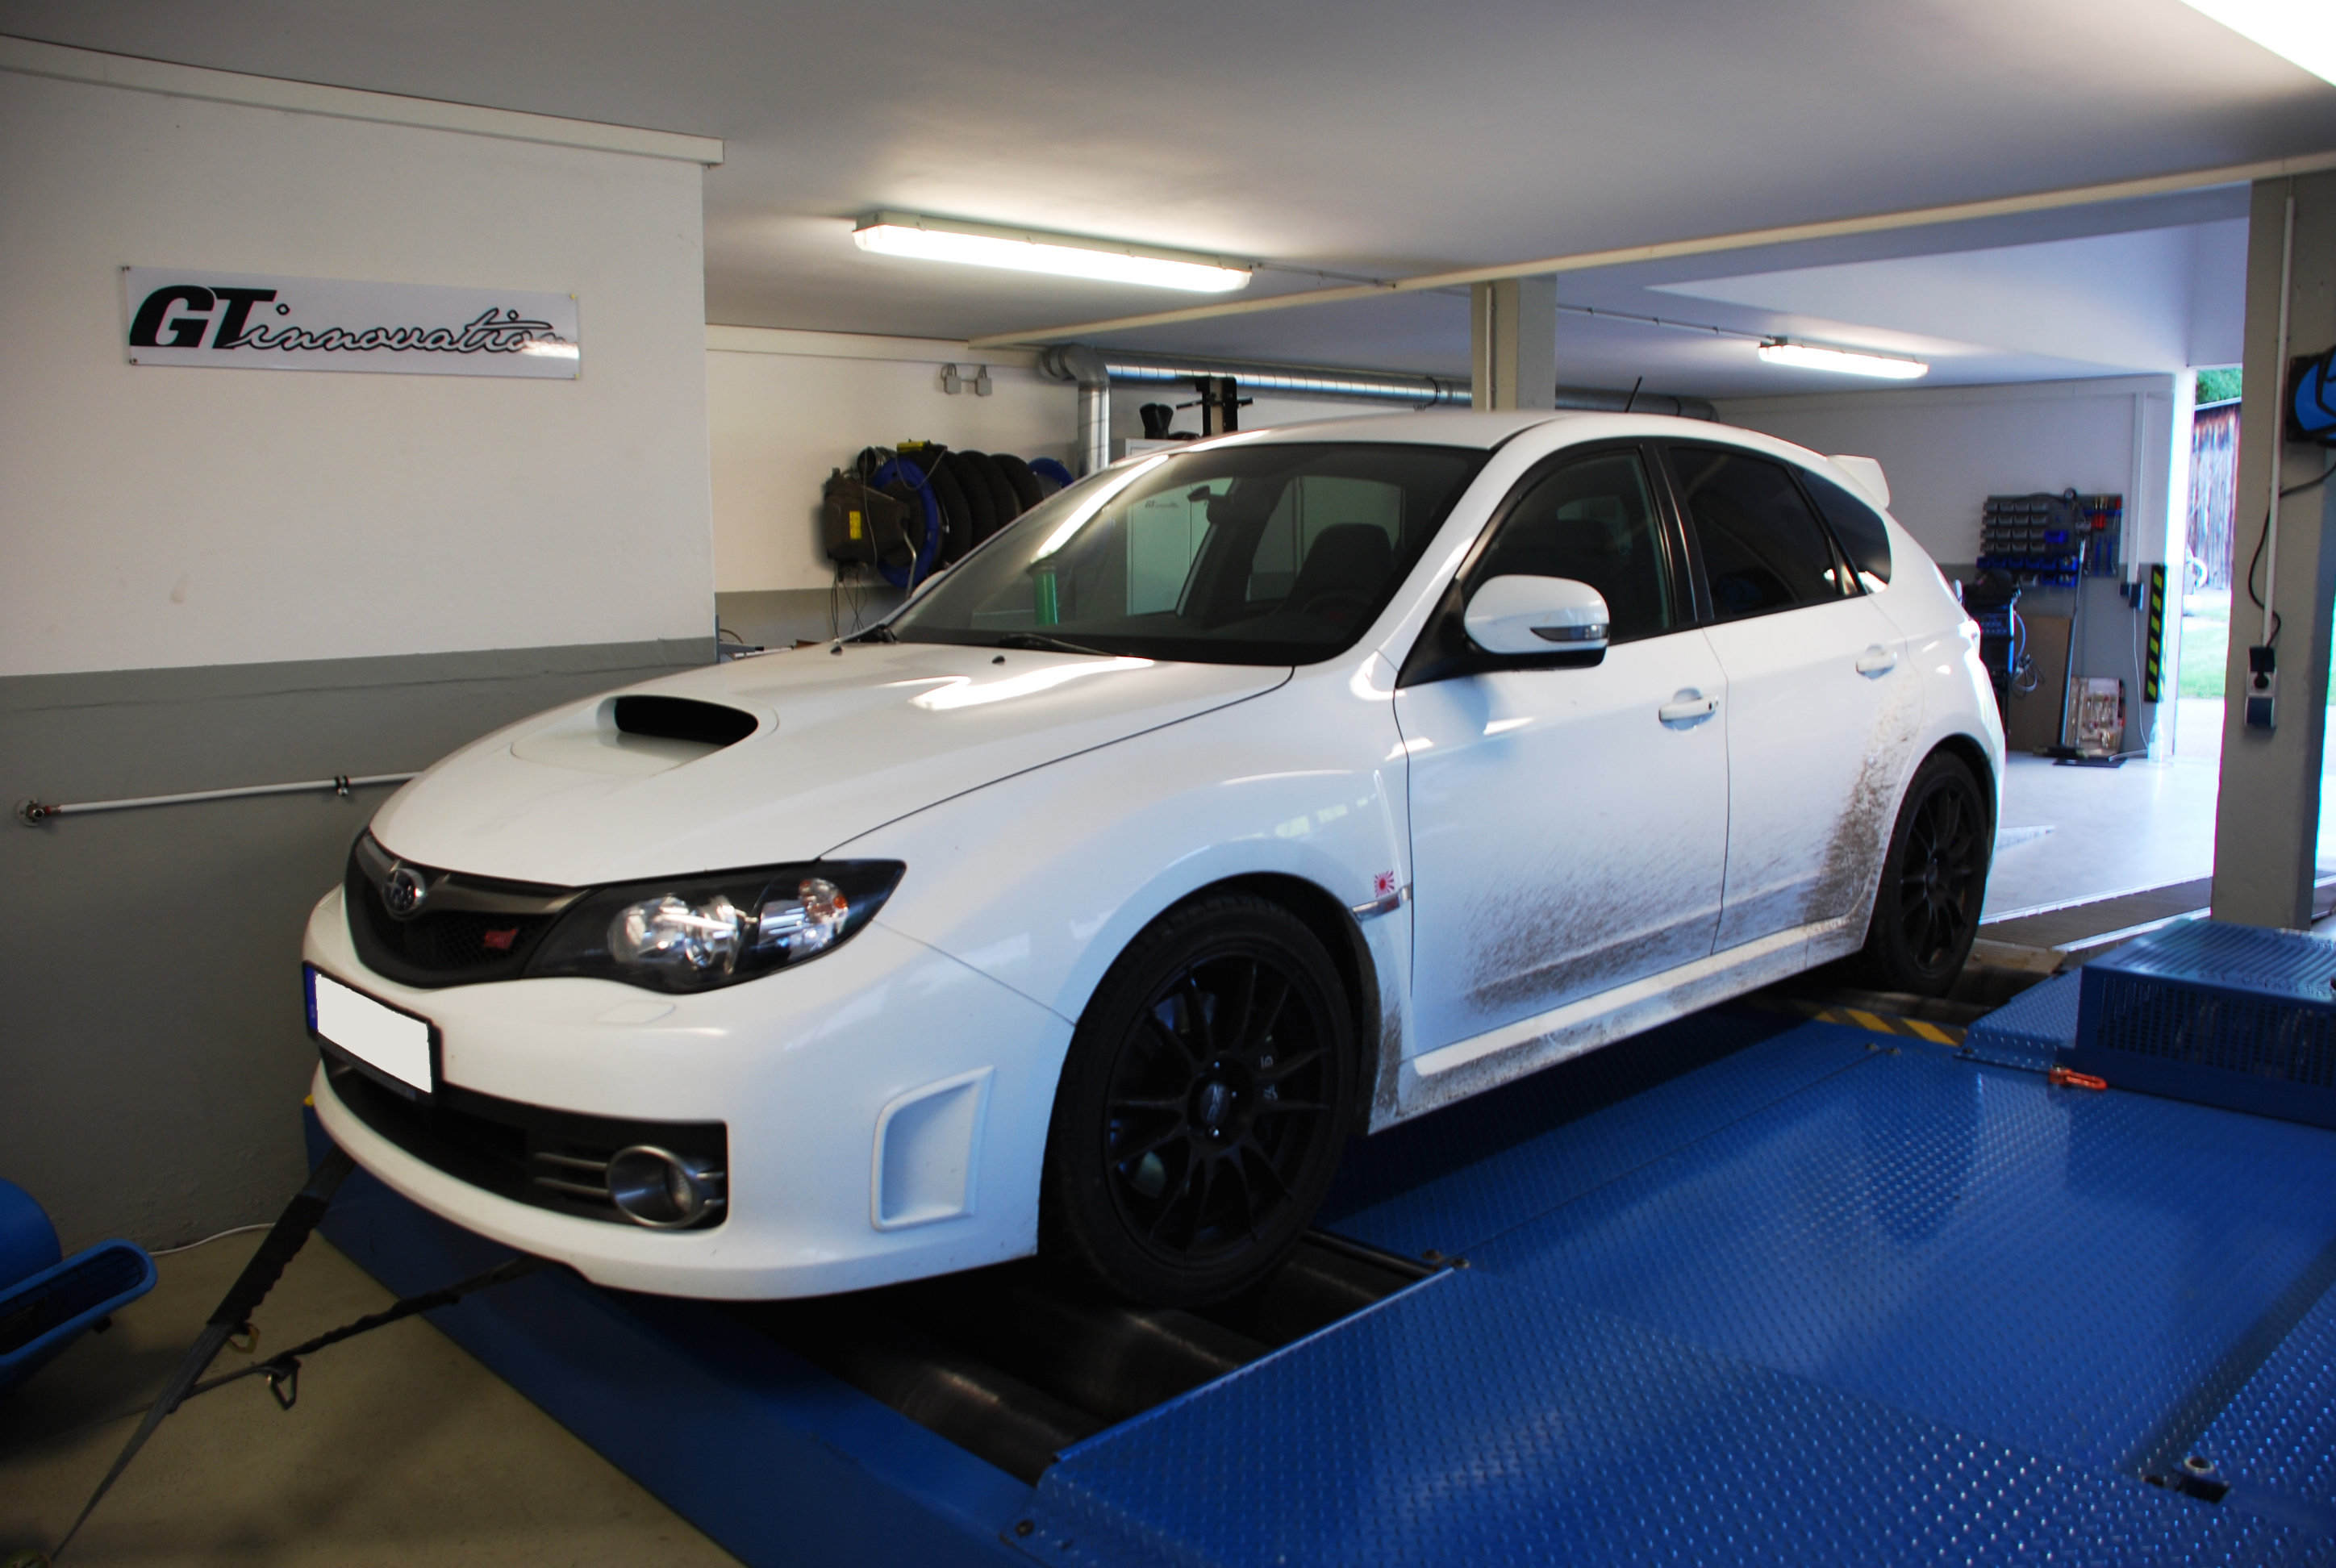 New Motors Subaru Erie Pa >> New Subaru Used Car Dealer Erie New Motors Subaru | Autos Post